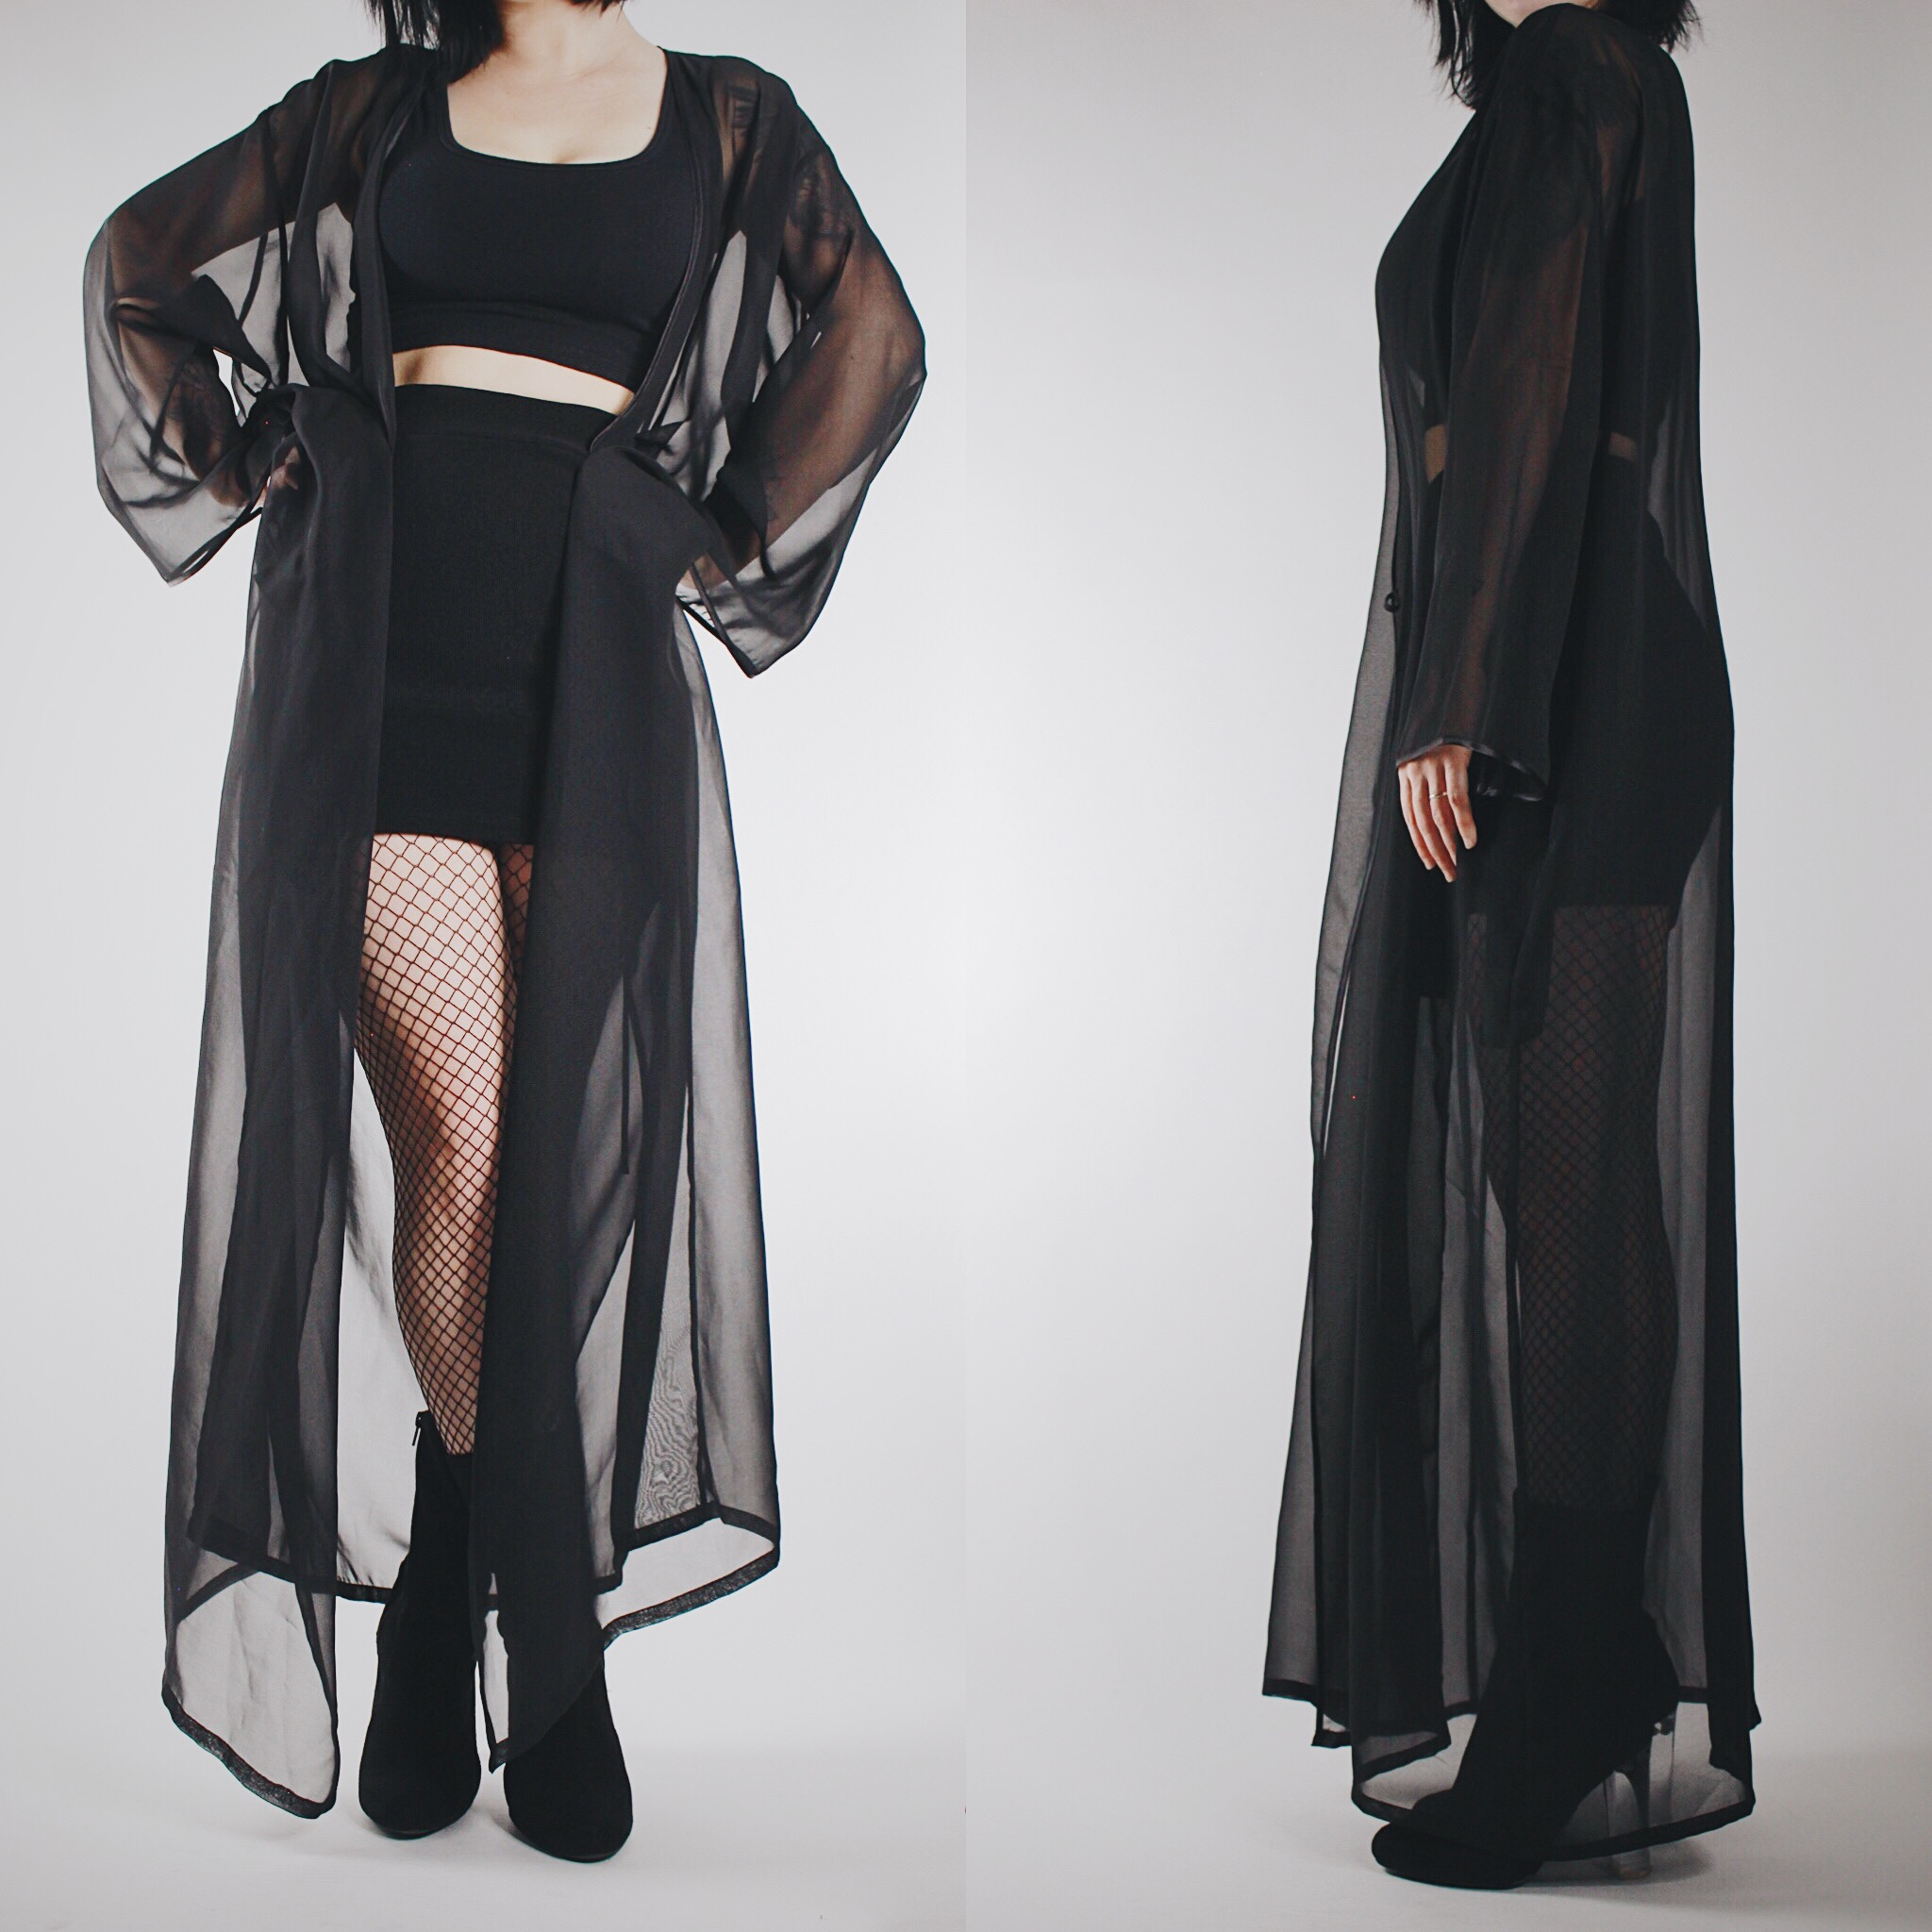 85fb343542d4 ... CLAIMED @skully_mean - Vintage 80s Black Sheer Flowy Multi-Way Dressing  Gown - Thumbnail